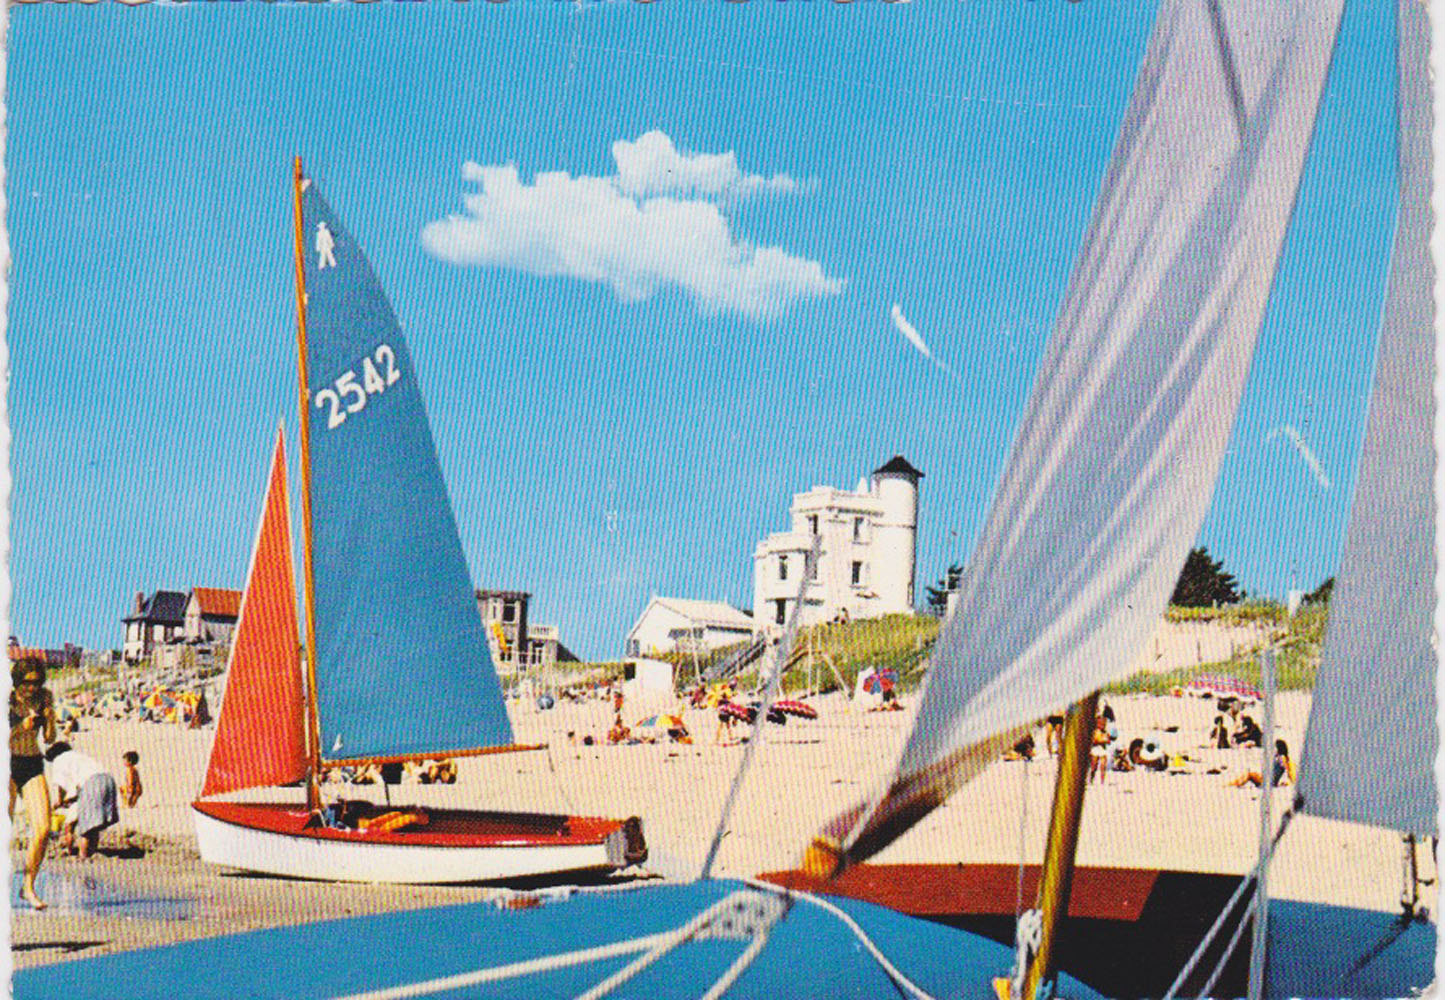 1969 St Martin Plage © collection Jean Claude Ferret